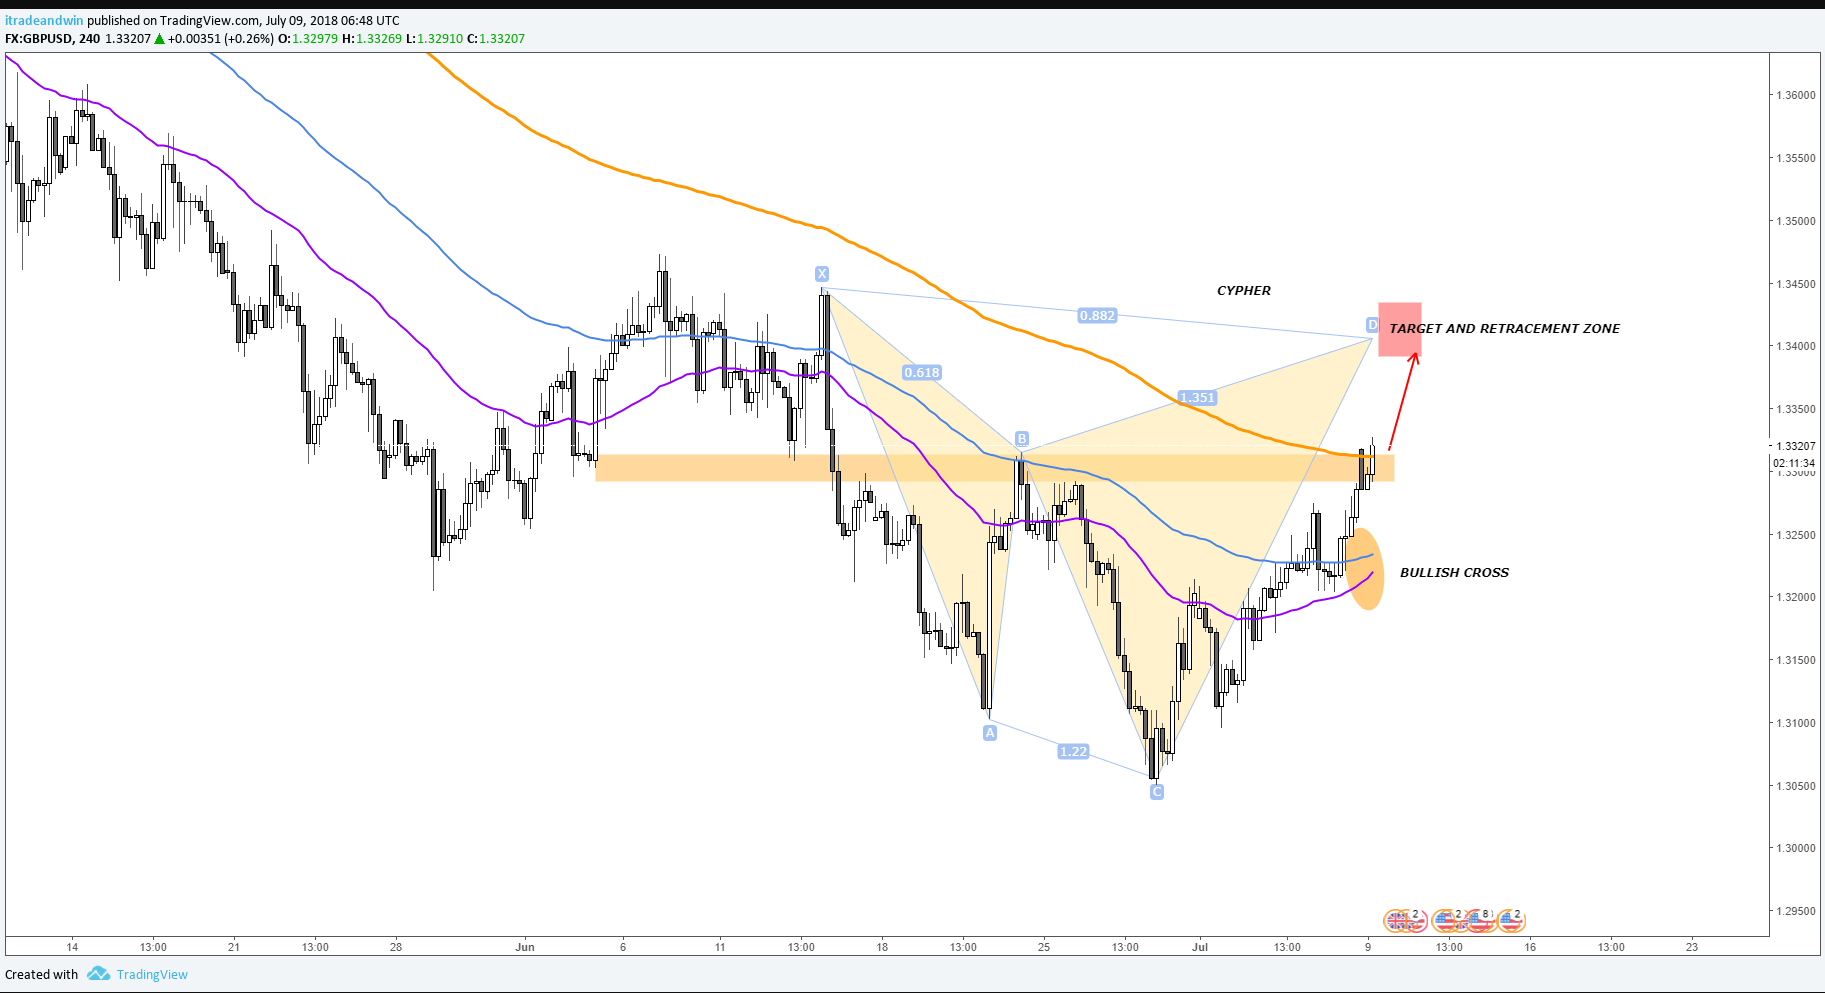 GBPUSD Technical Overview and Bearish Cypher Formation